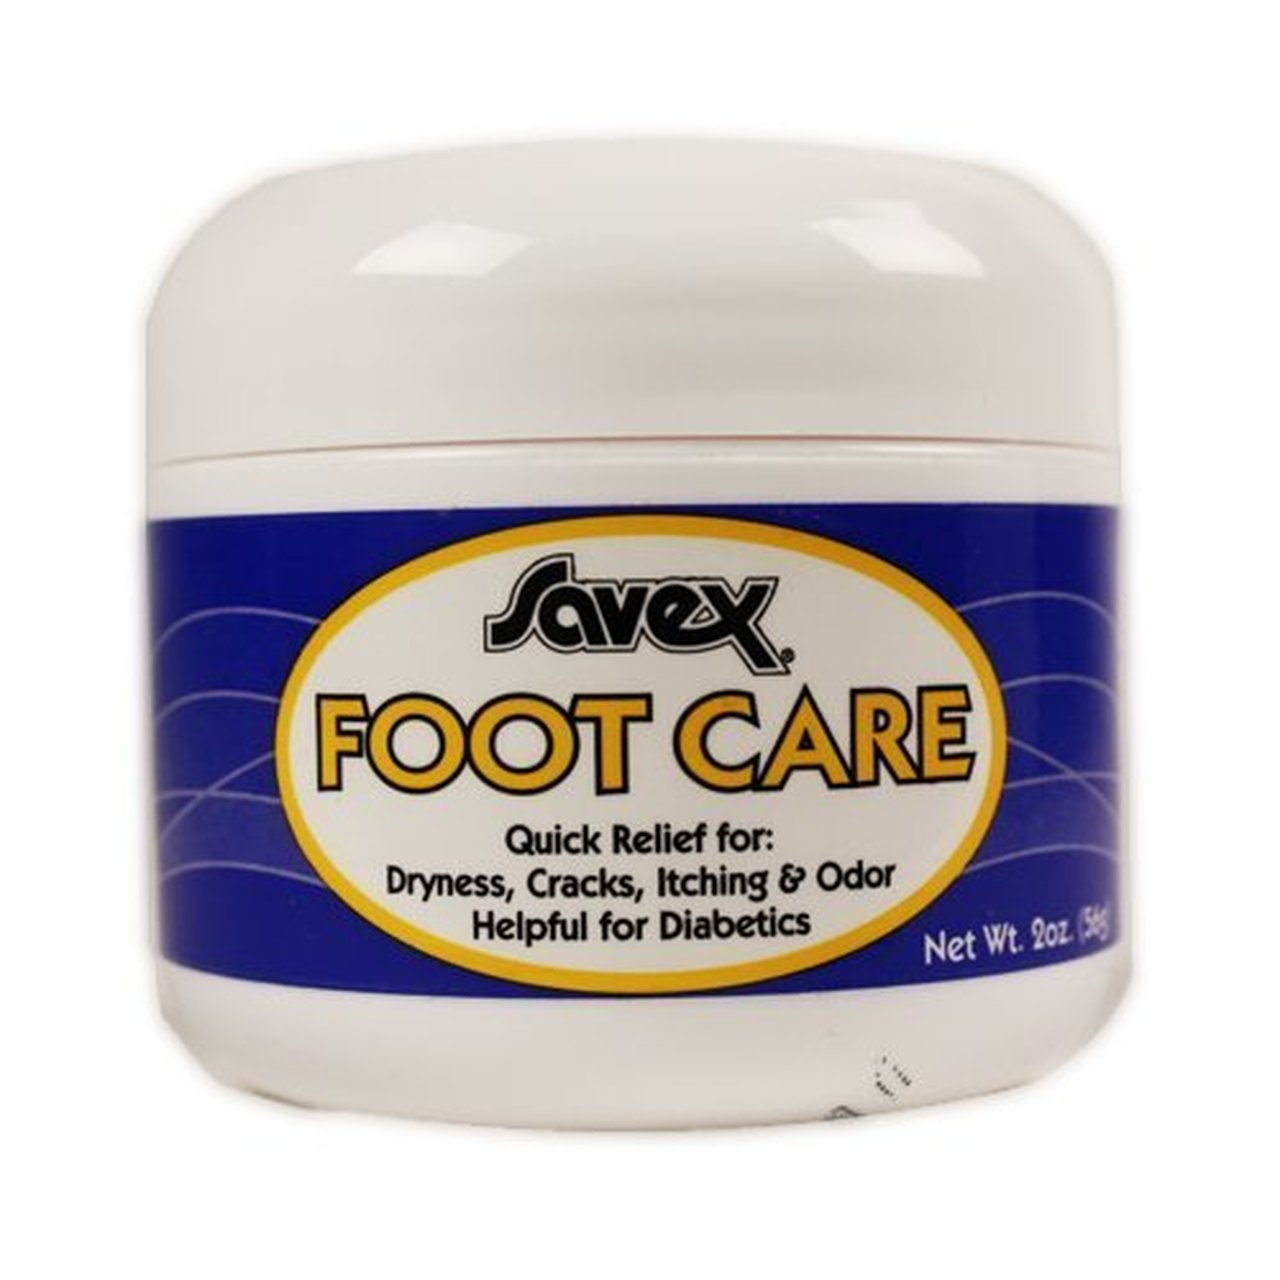 Savex Foot Care 2 Oz BOX OF 6 JAR